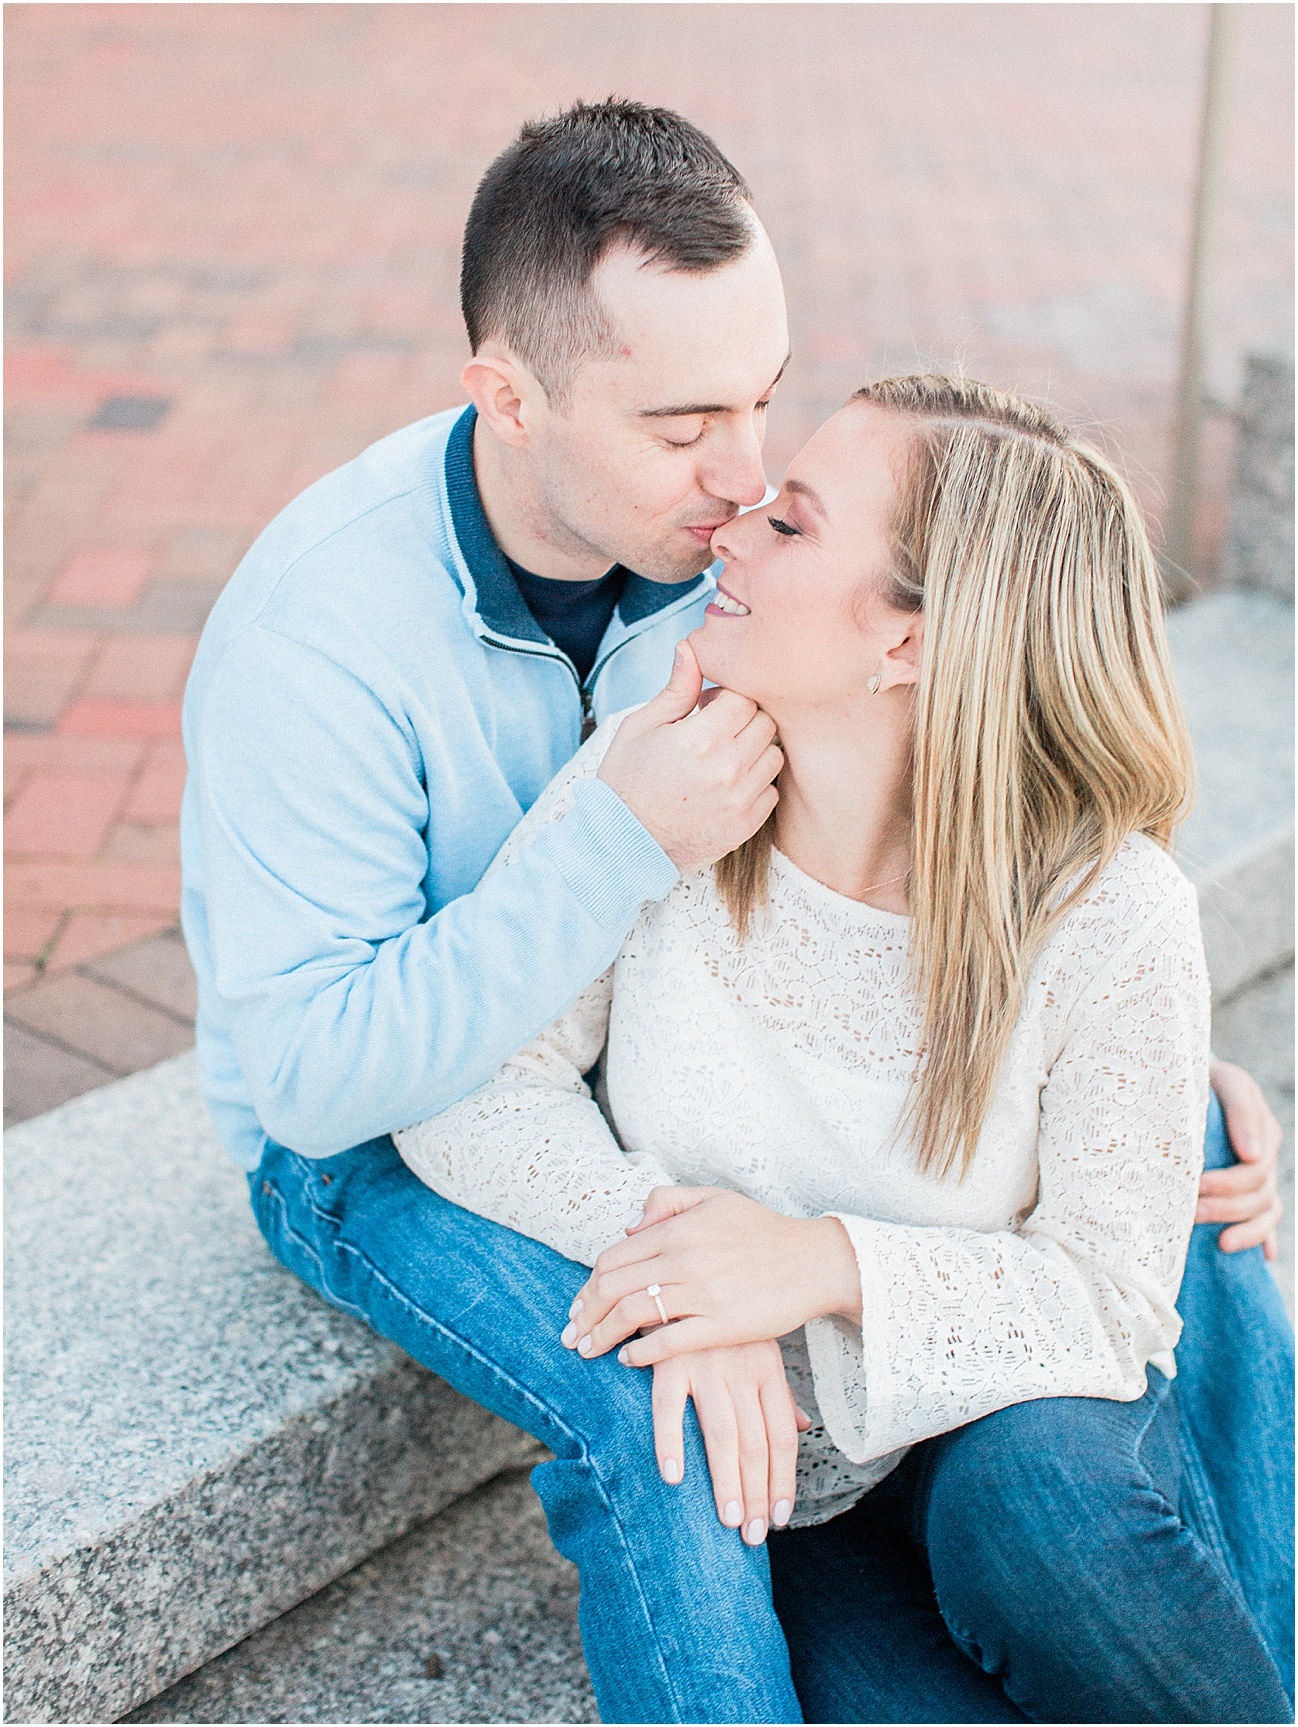 jenny_jared_beacon_hill_acorn_street_seaport_engagement_fall_cape_cod_boston_wedding_photographer_meredith_jane_photography_photo_1545.jpg